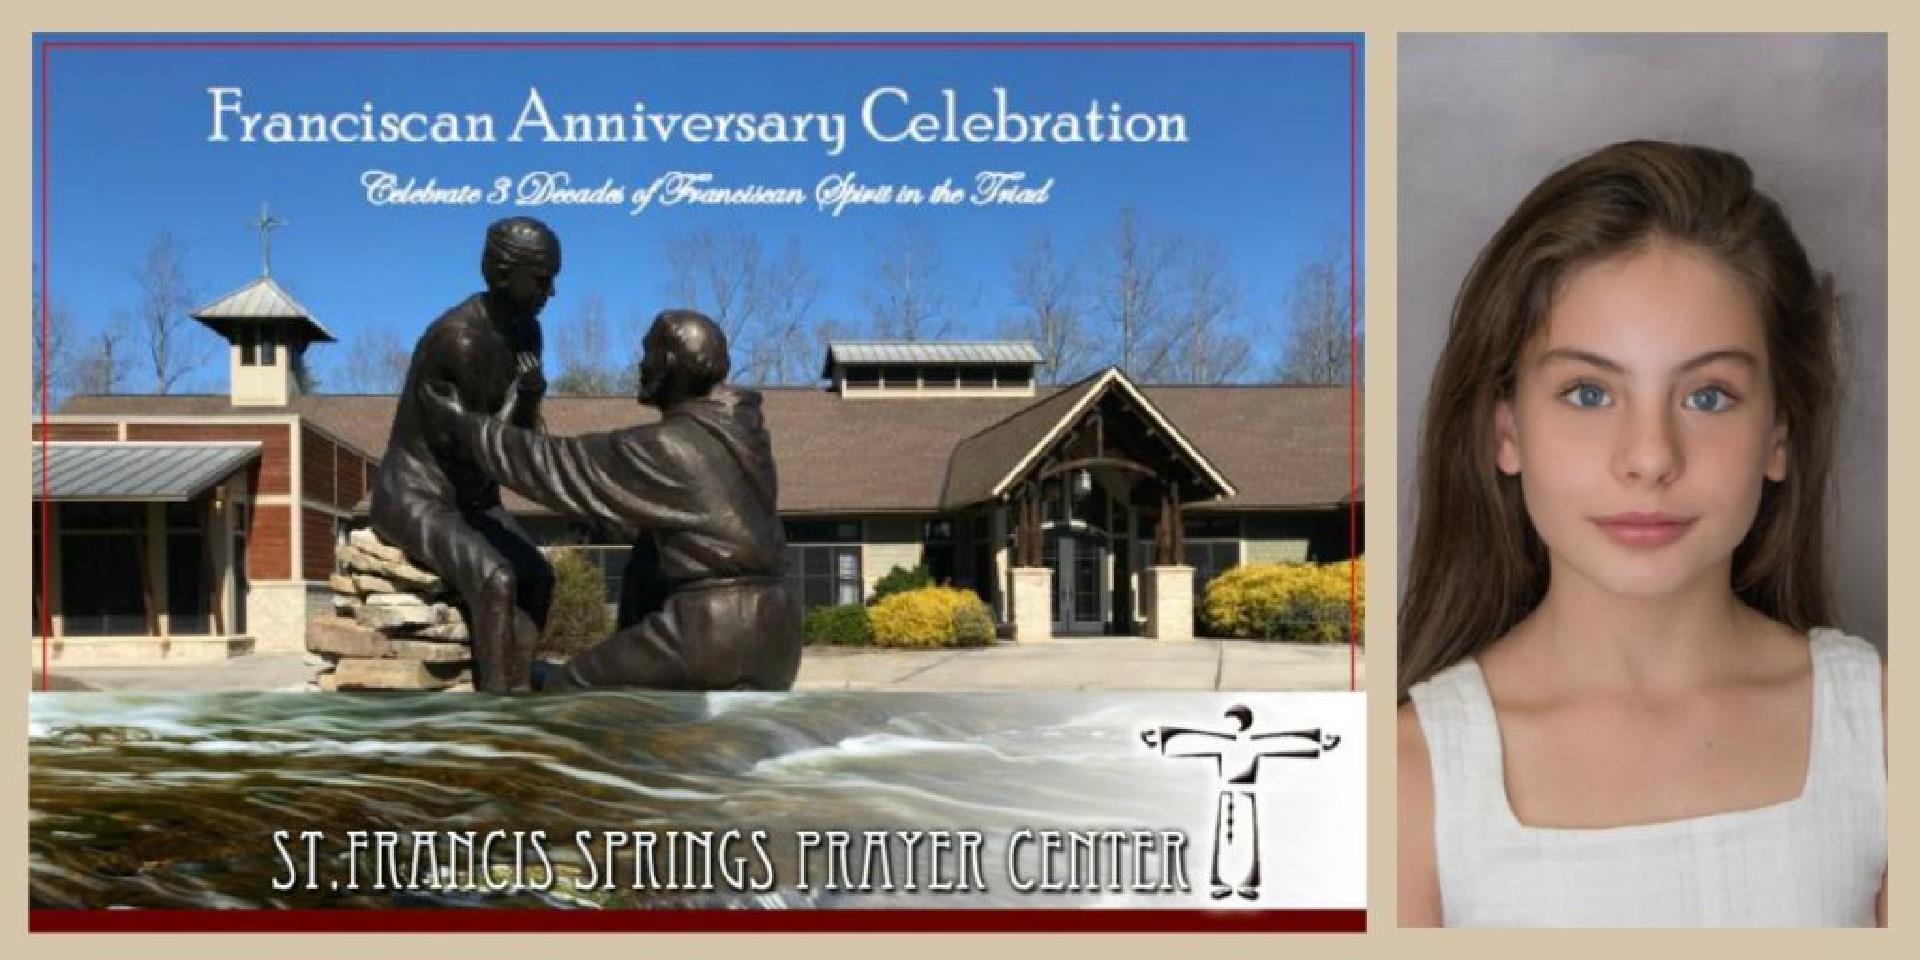 15th Anniversary Celebration of St Francis Springs